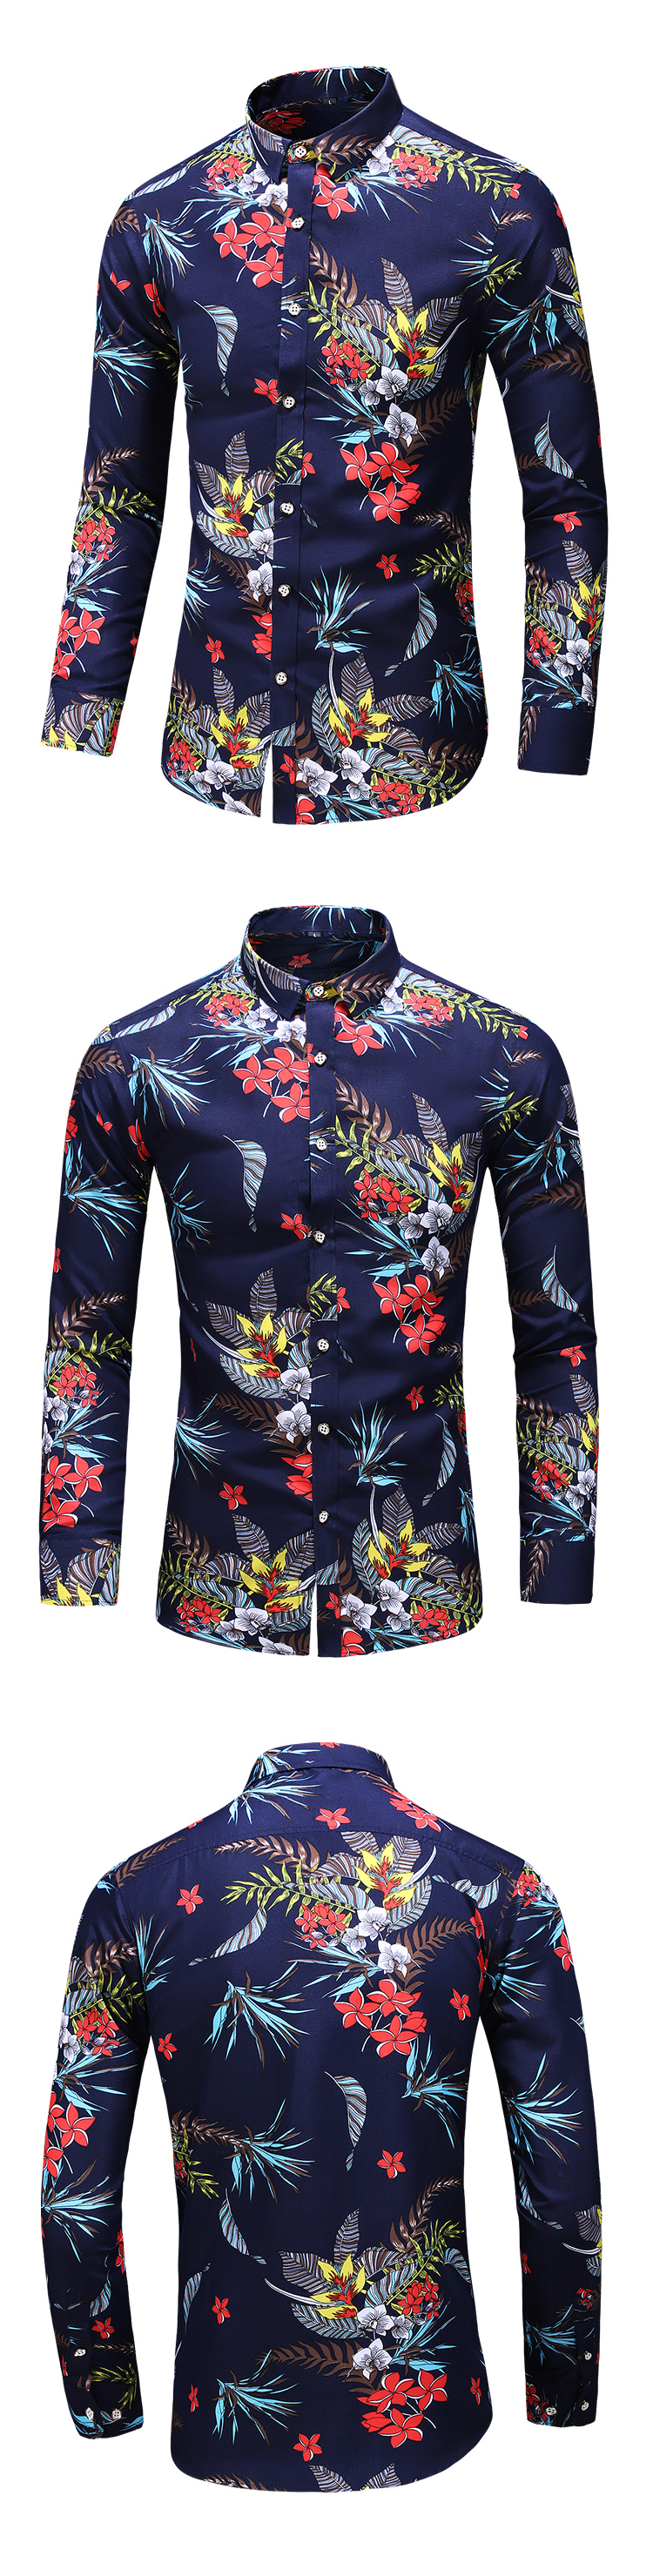 HTB1ZXFmauP2gK0jSZFoq6yuIVXaV - Casuals Shirt Men Autumn New Arrival Personality Printing Long Sleeve Shirts Mens Fashion Big Size Business Office Shirt 6XL 7XL